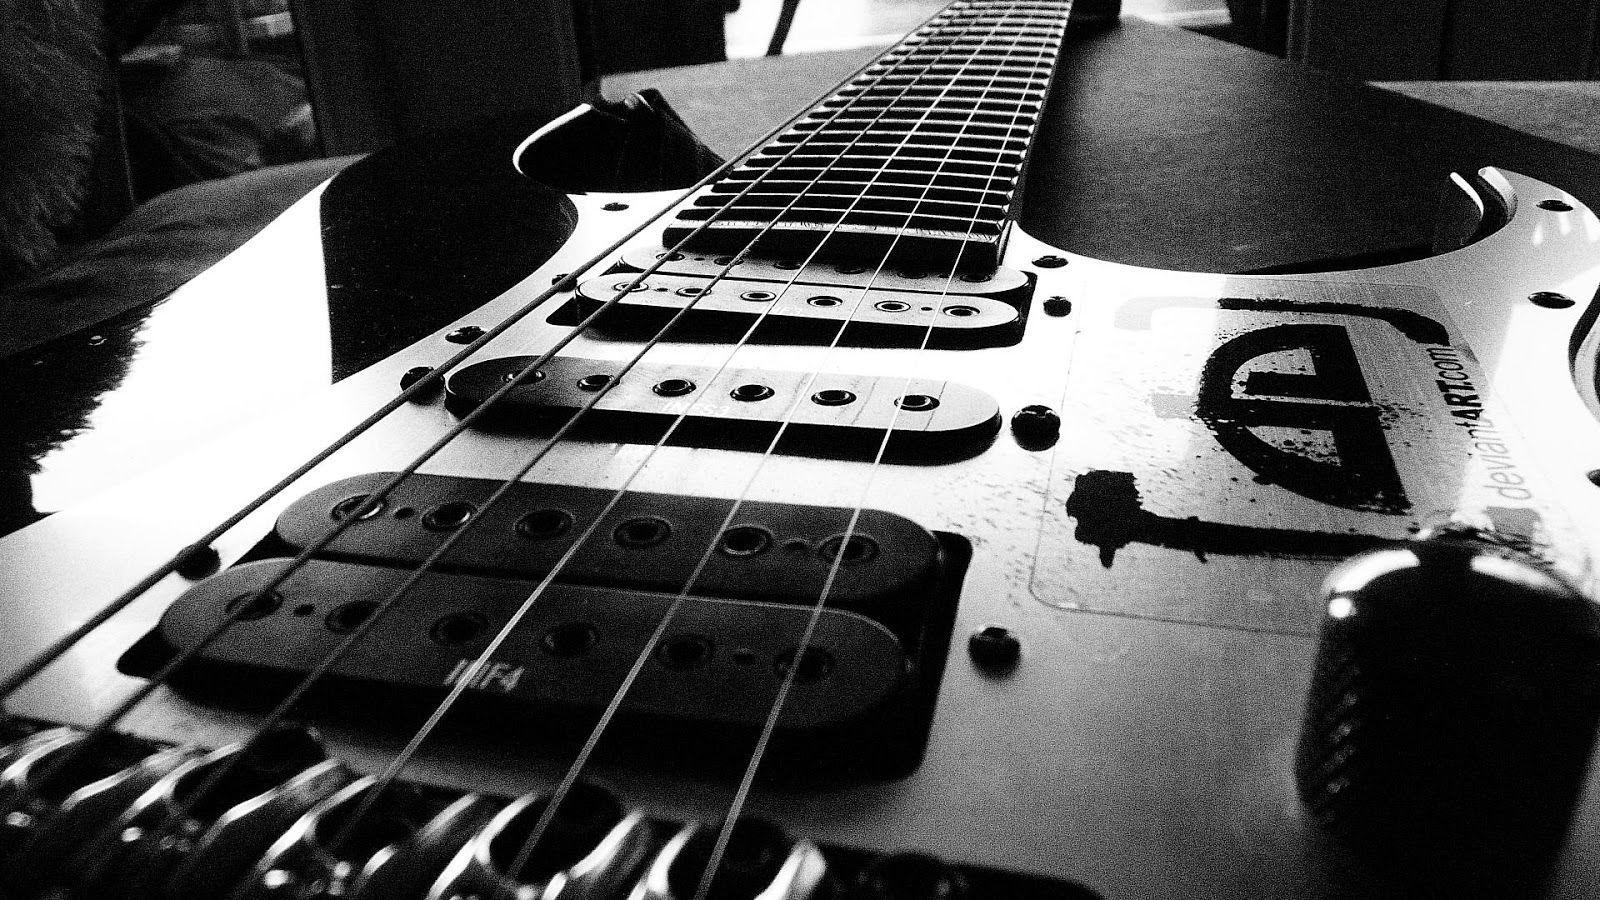 Wallpapers Electric Guitar. | Guitarras Electricas | Pinterest